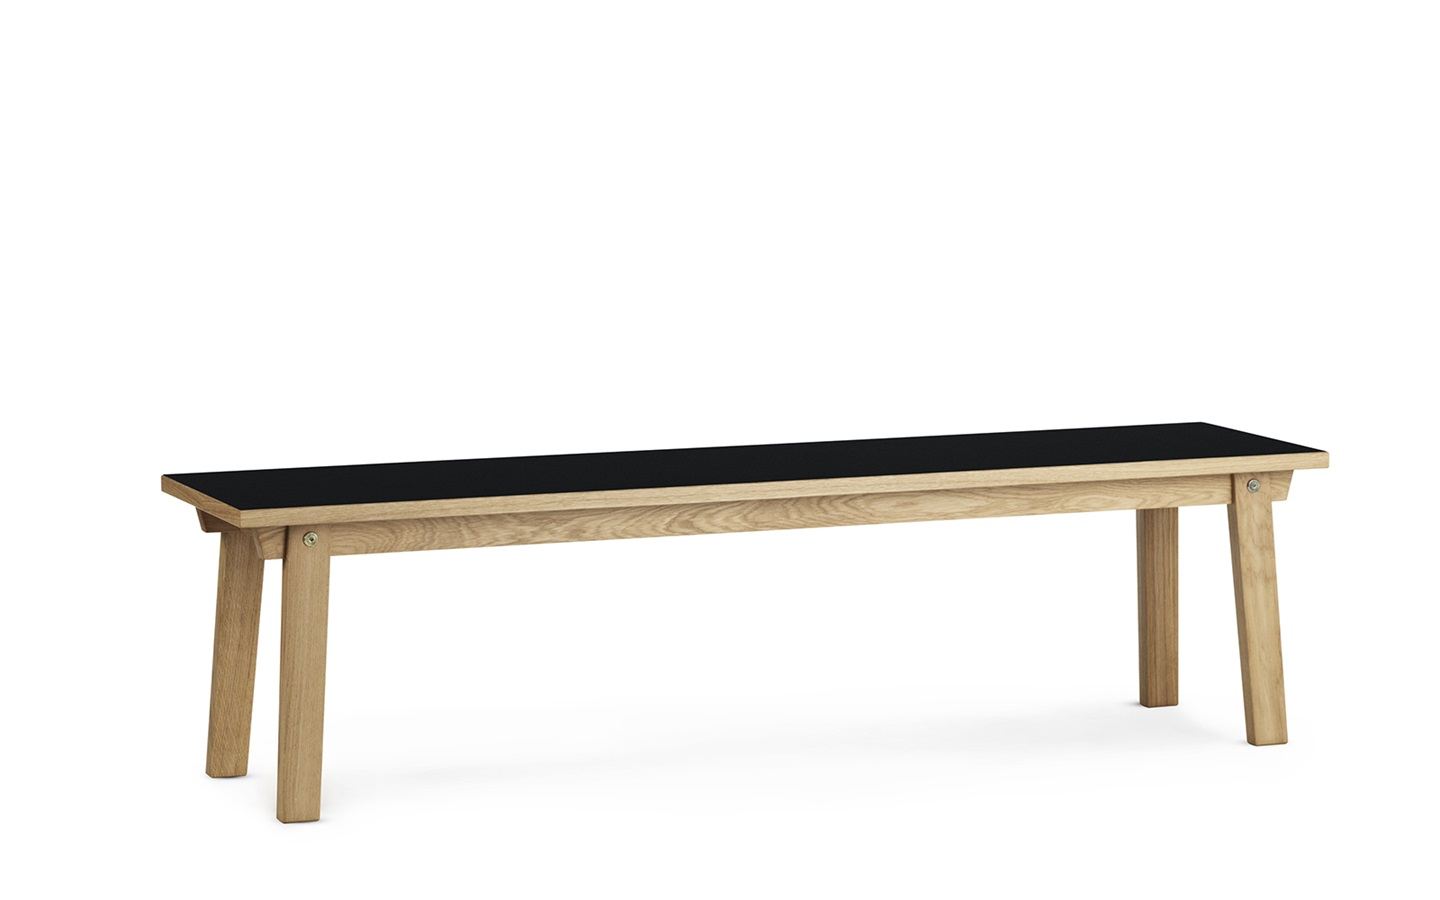 slice bench linoleum x cm black - undefined